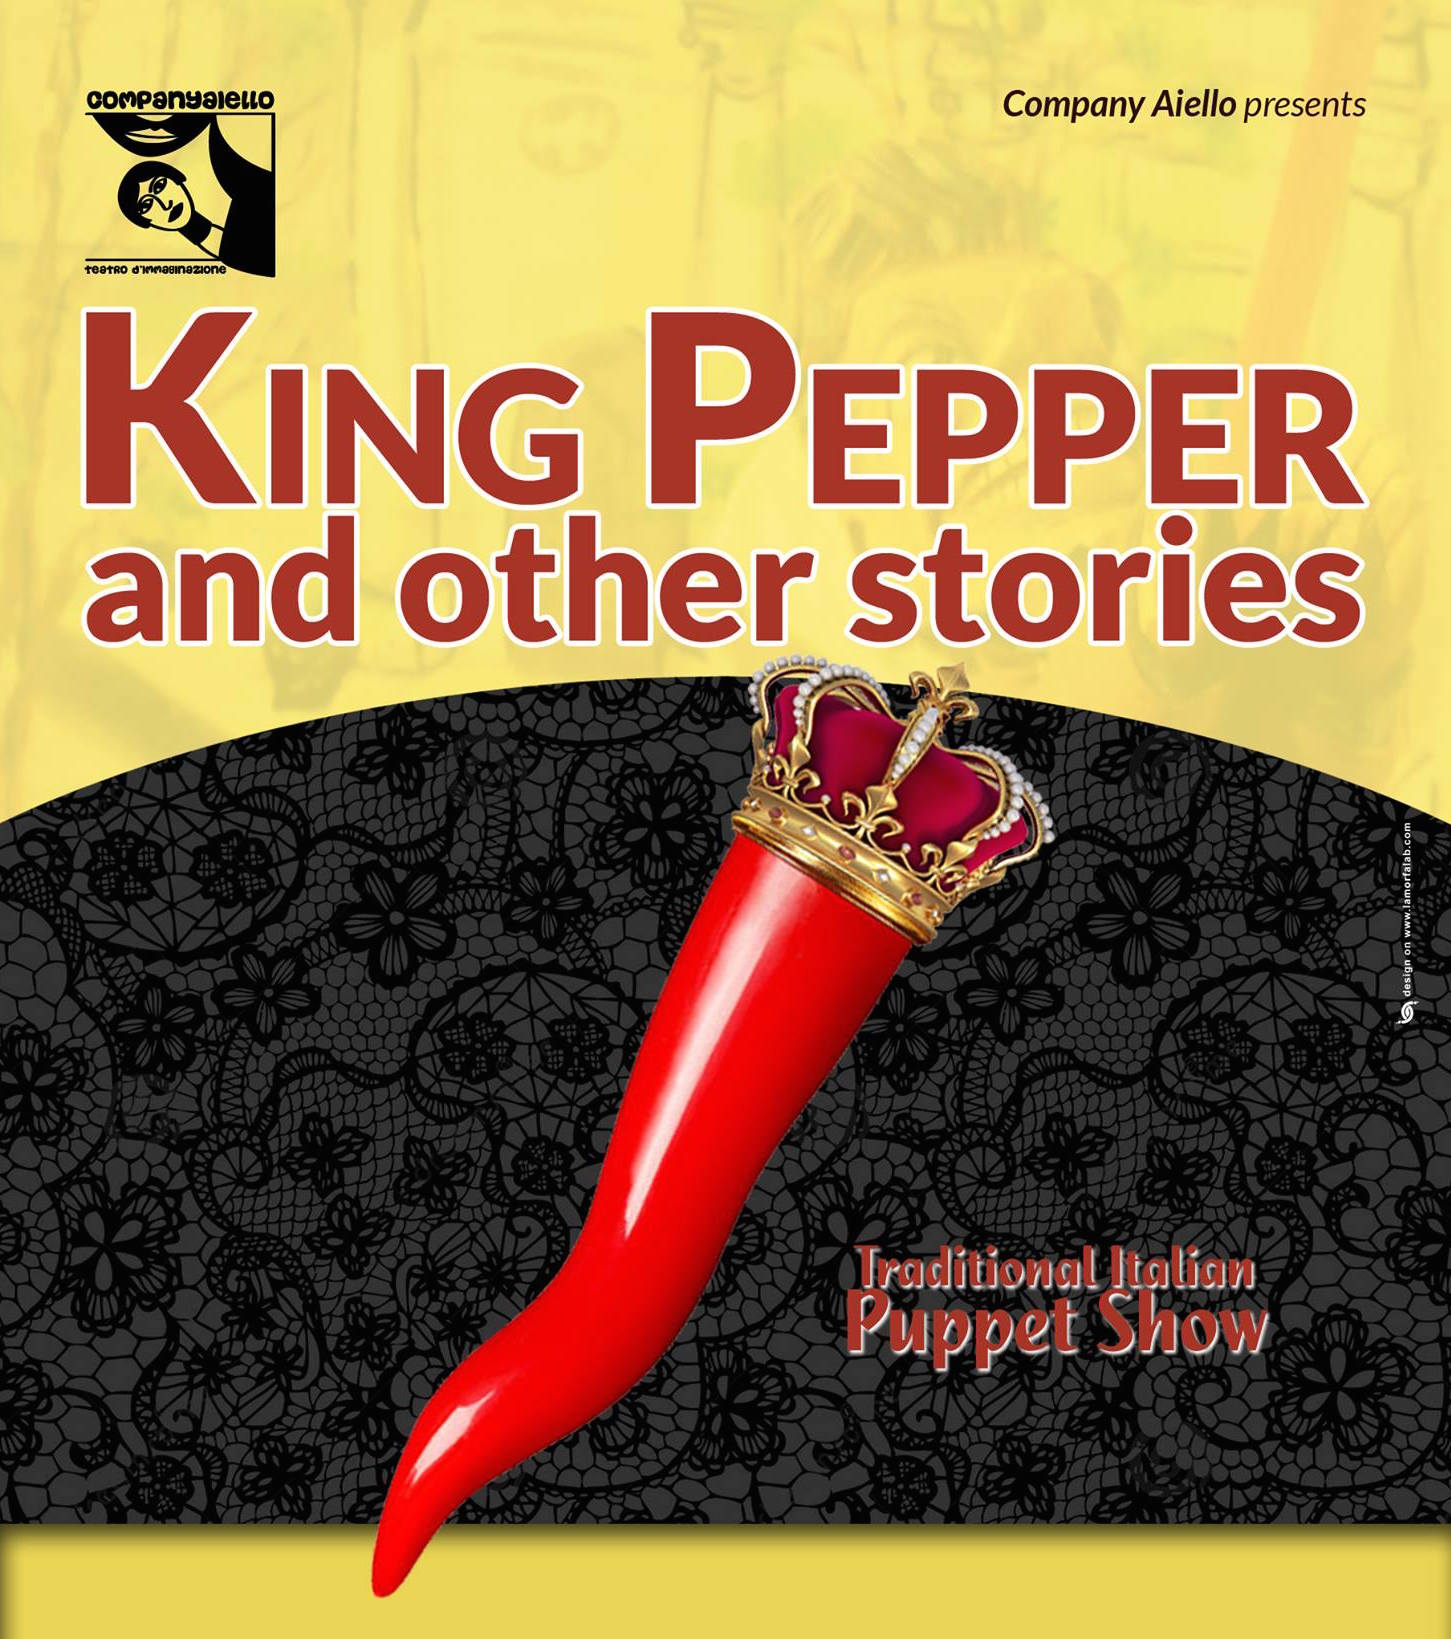 King Pepper Other Stories no date small version